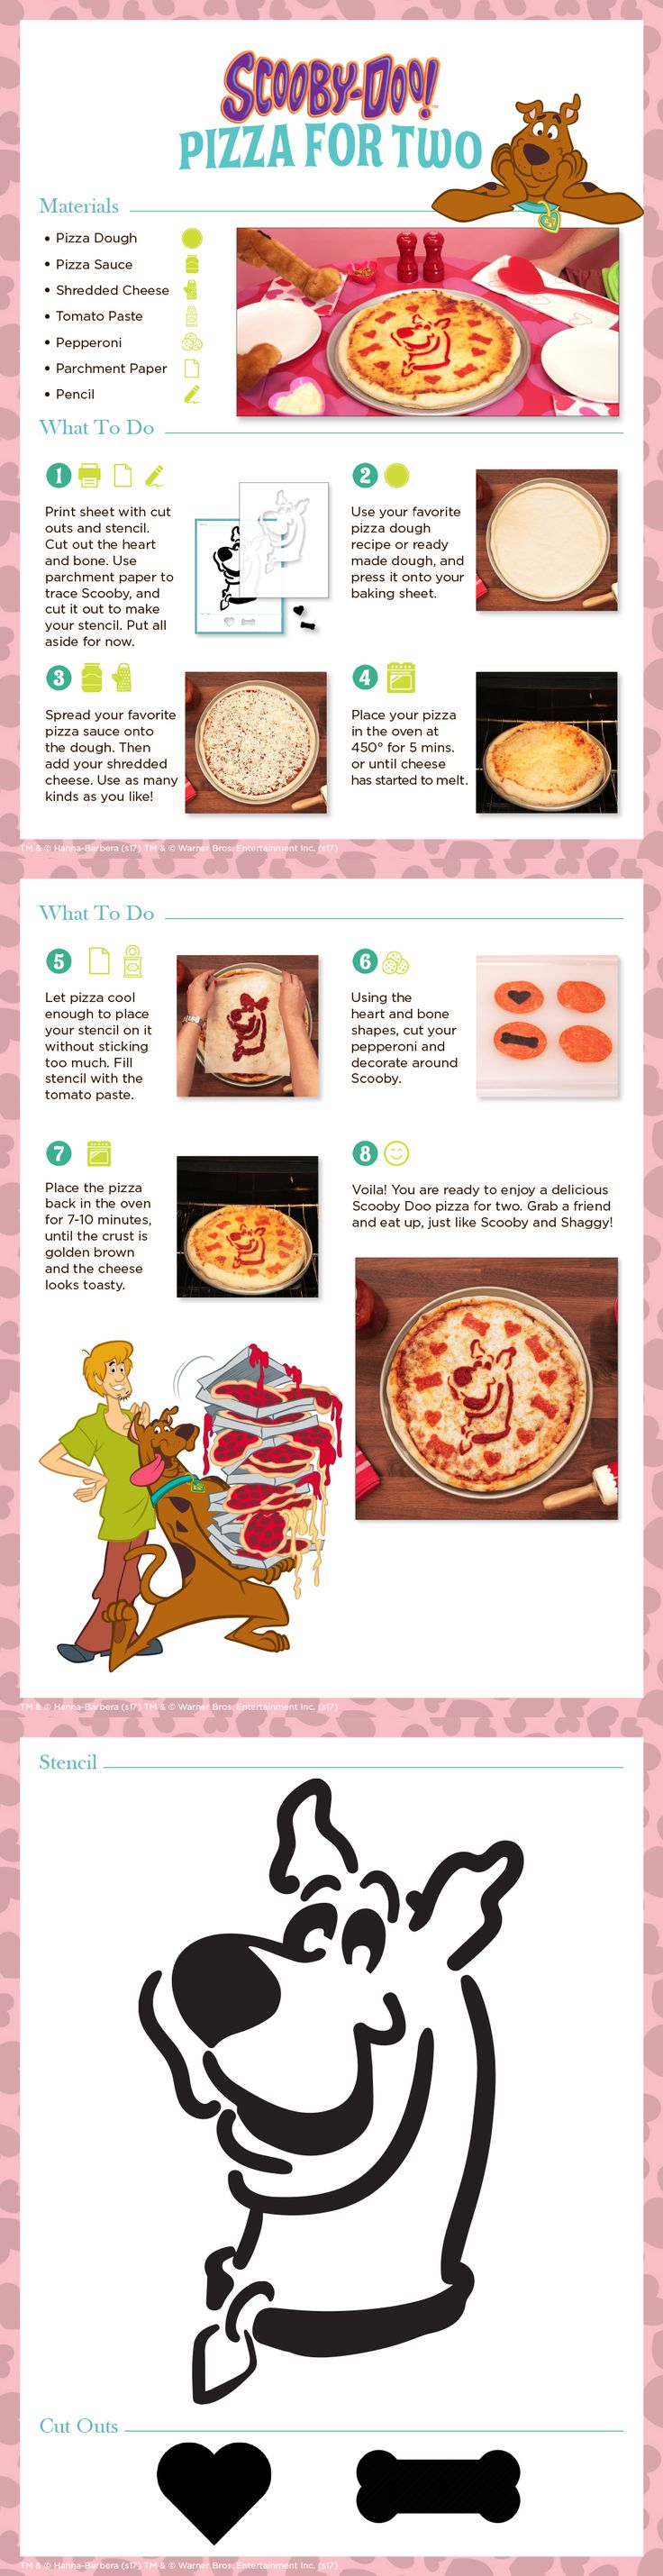 Scooby-Doo and pizza for two! Or for one, depending on your appetite  Get the recipe here!